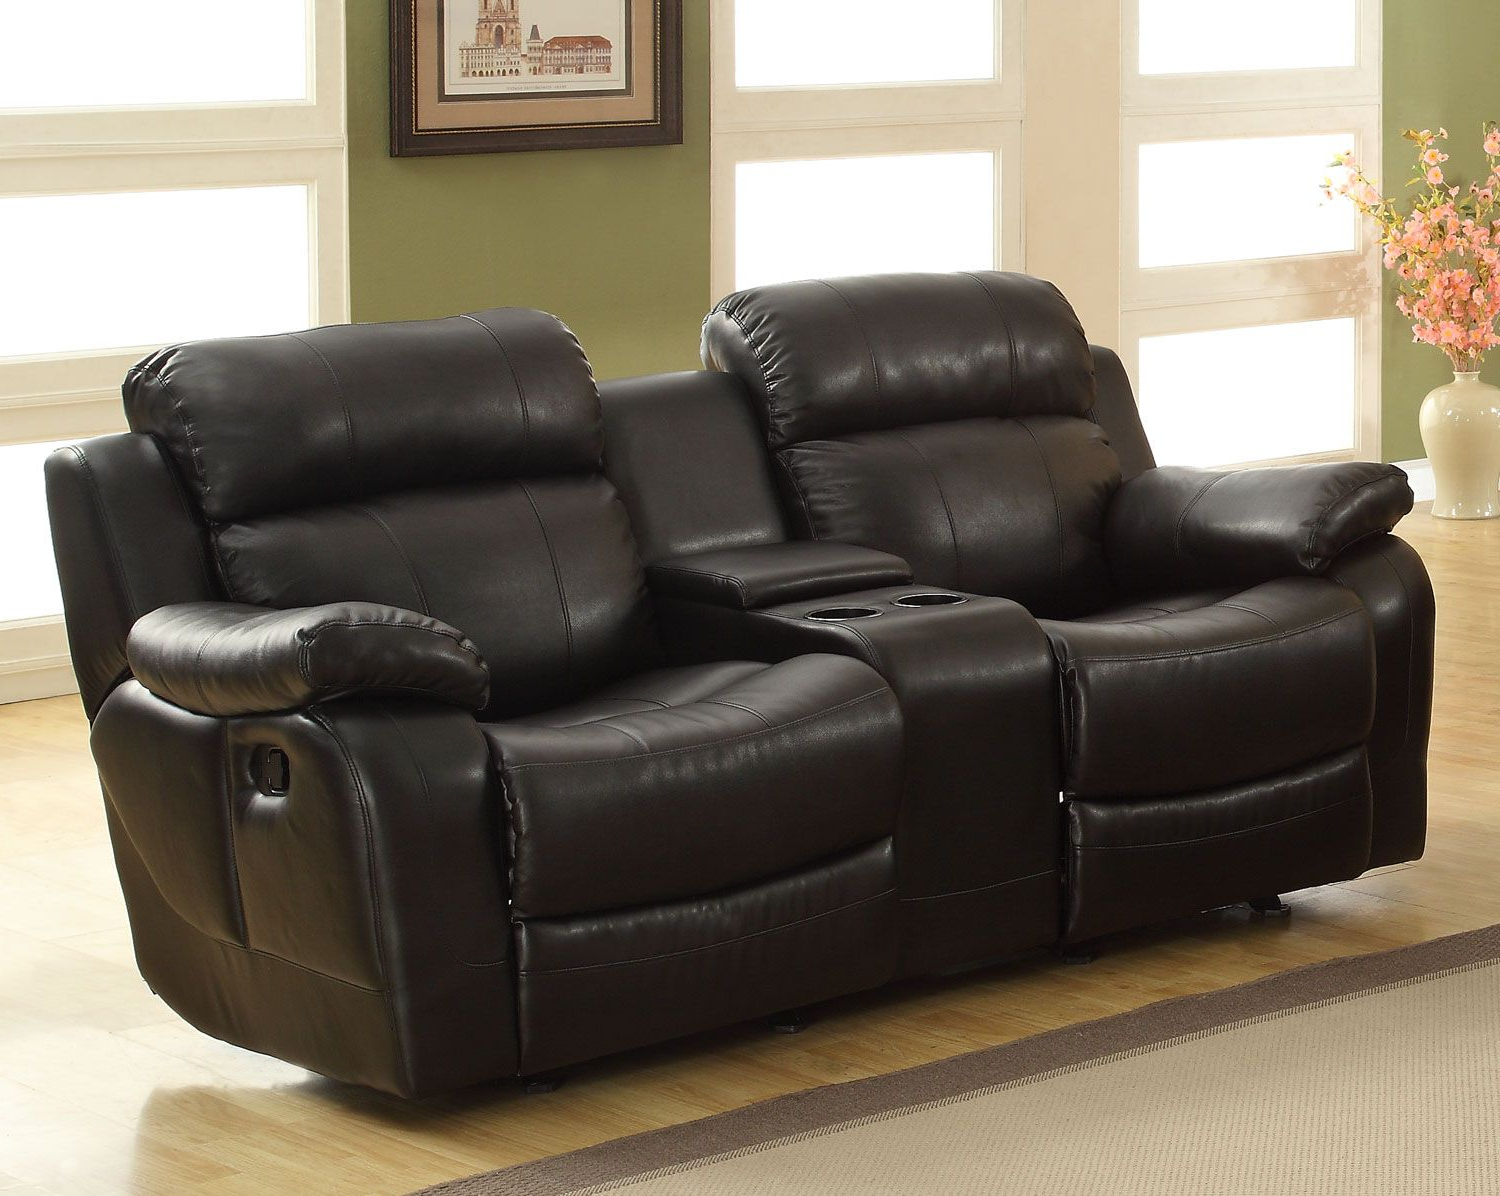 Travis Dk Grey Leather 6 Piece Power Reclining Sectionals With Power Headrest & Usb Inside Widely Used Homelegance Marille Love Seat Glider Recliner With Center Console (View 7 of 20)